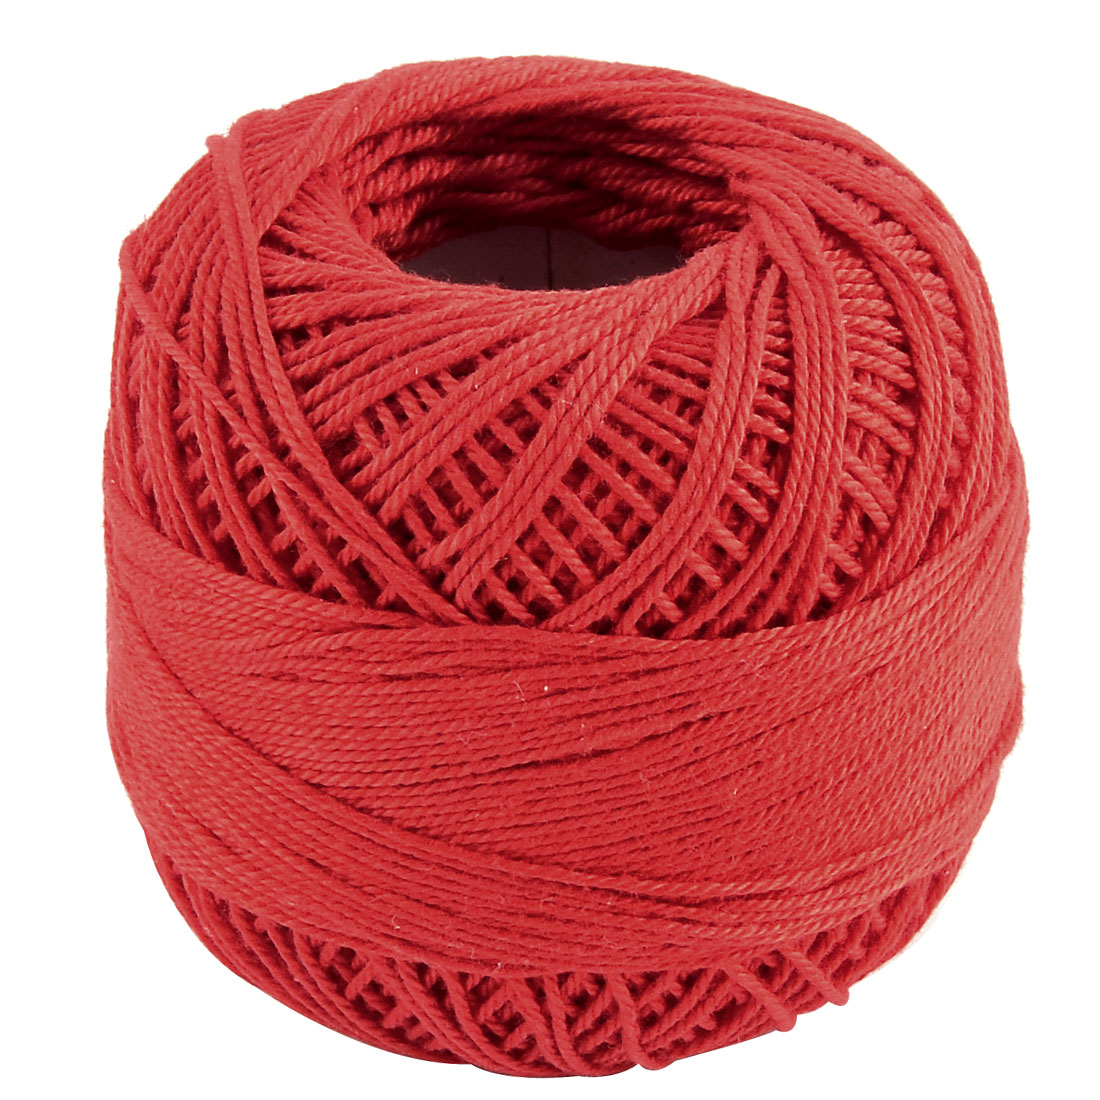 Cotton DIY Craft Handcraft Weaving Glove Shawl Muffler Yarn Thread Red